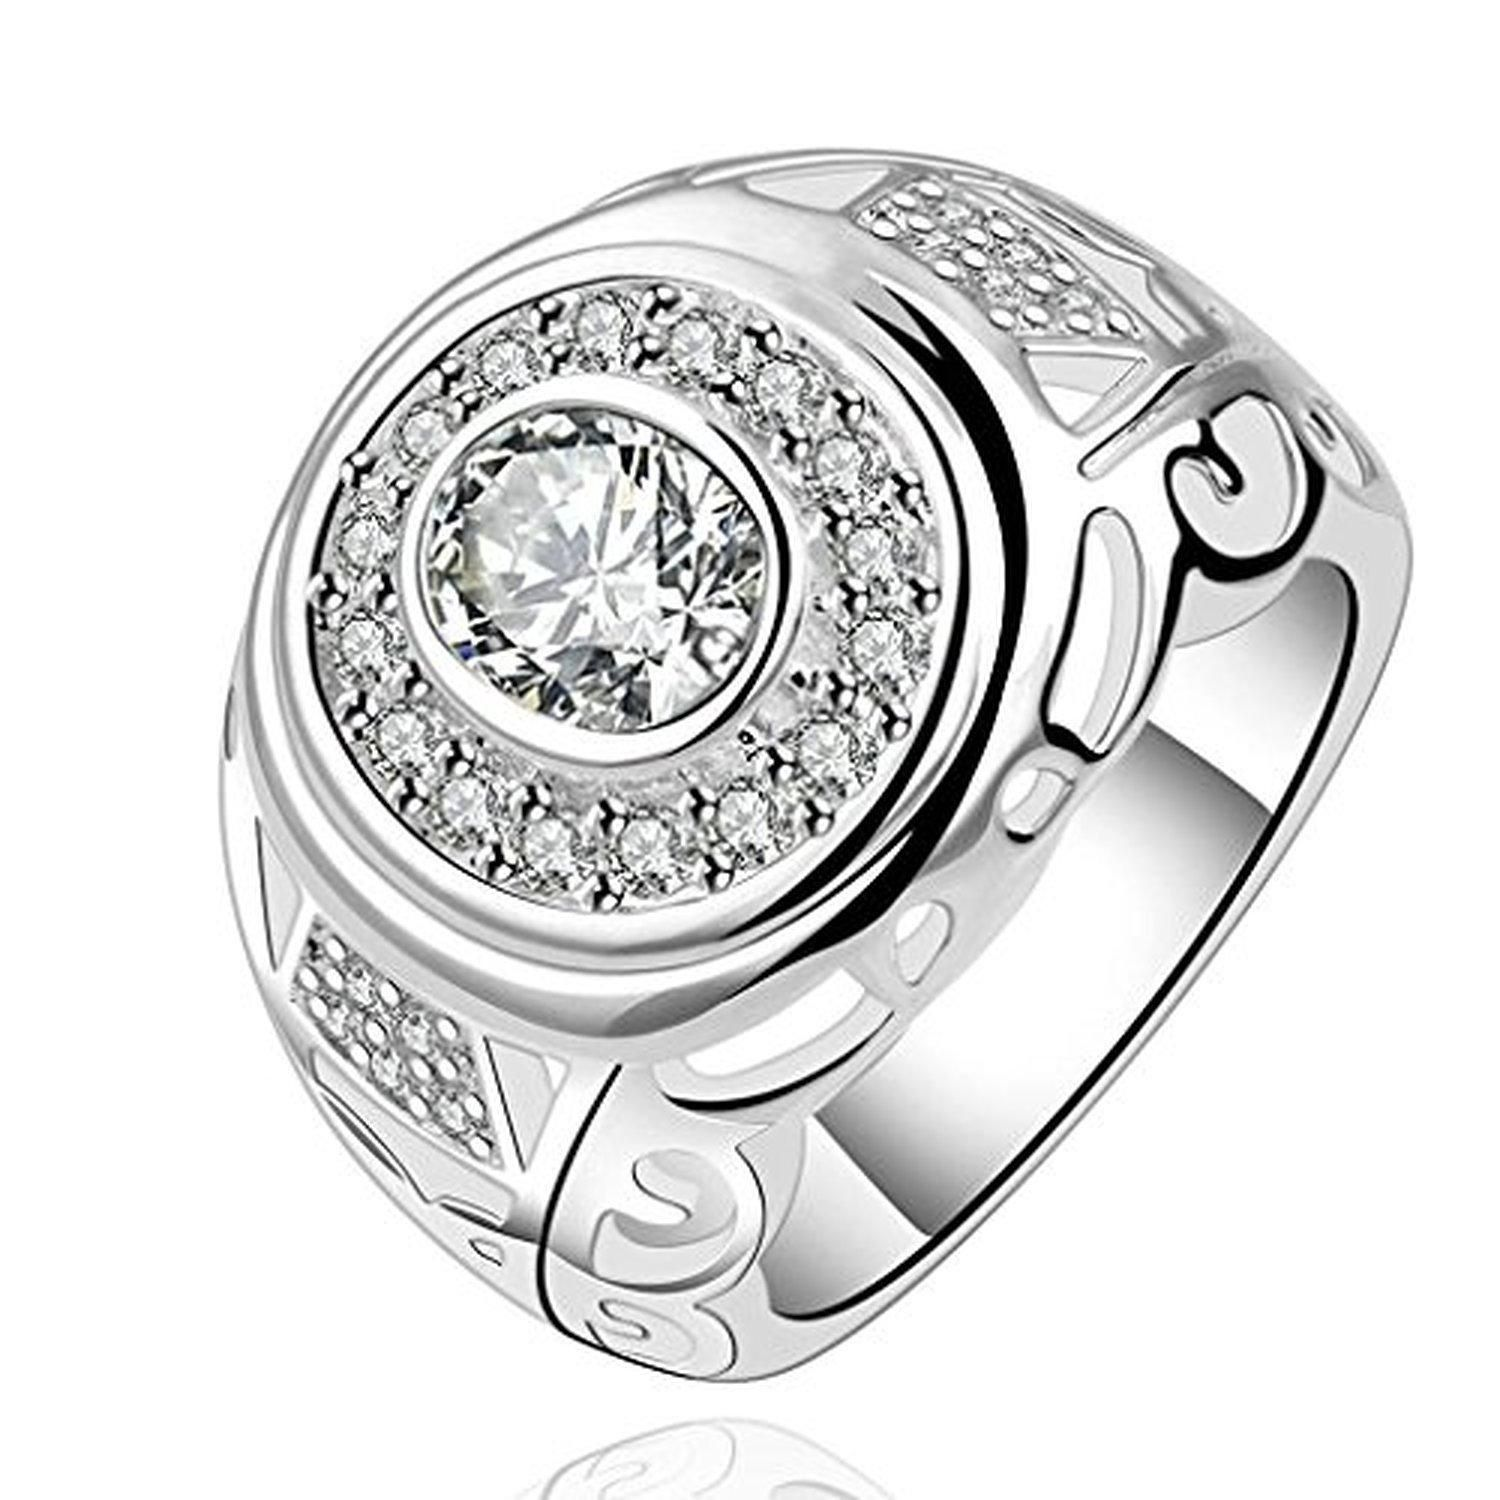 Alimab Silver-Plated Womens Wedding Bands Round Shape White Silver - Brought to you by Avarsha.com